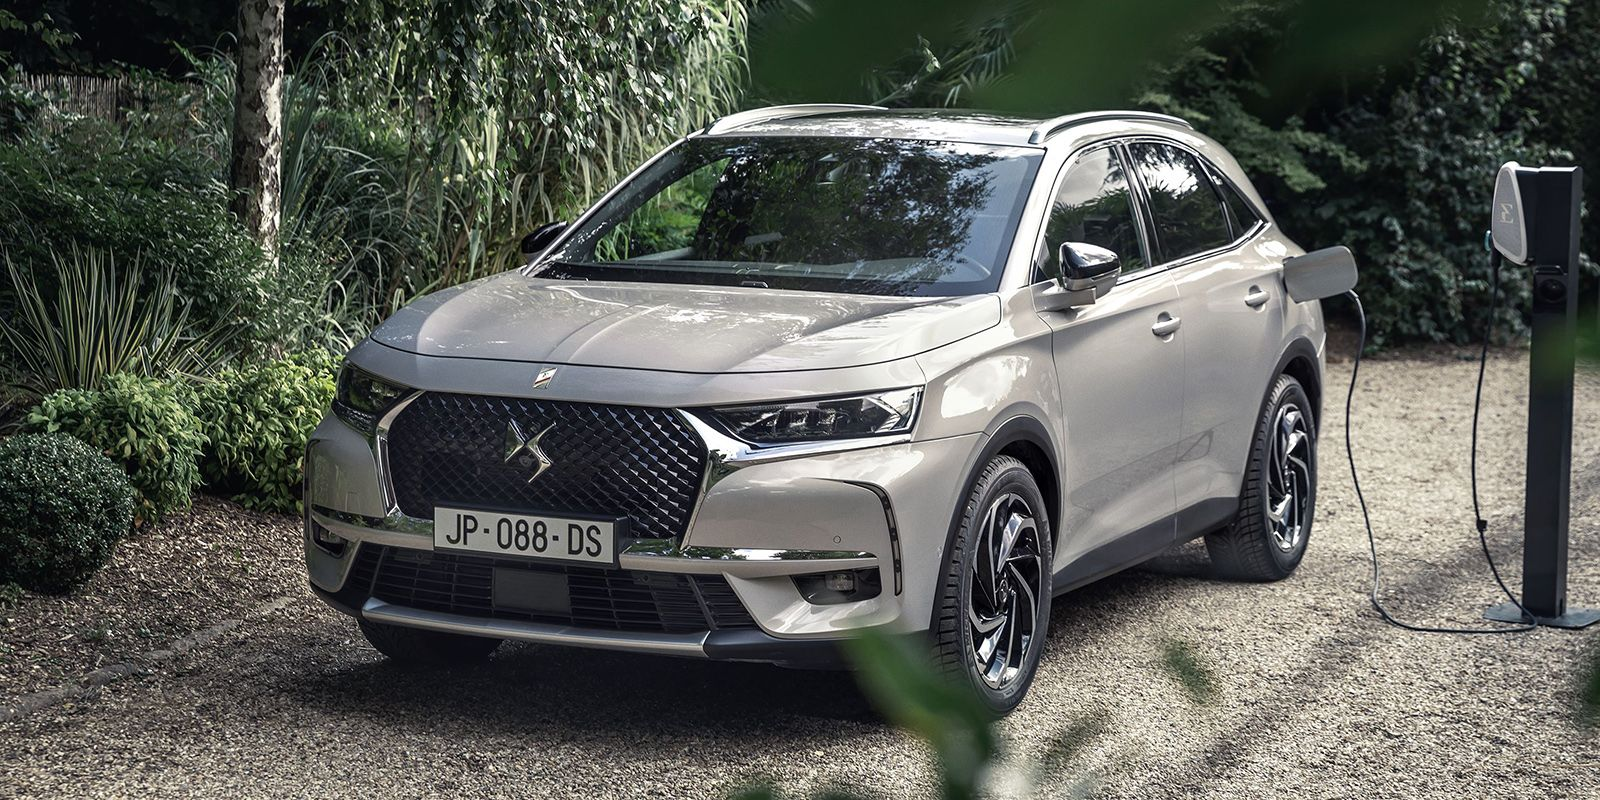 ds 7 crossback e-tense 4x4 hibrido enchufable